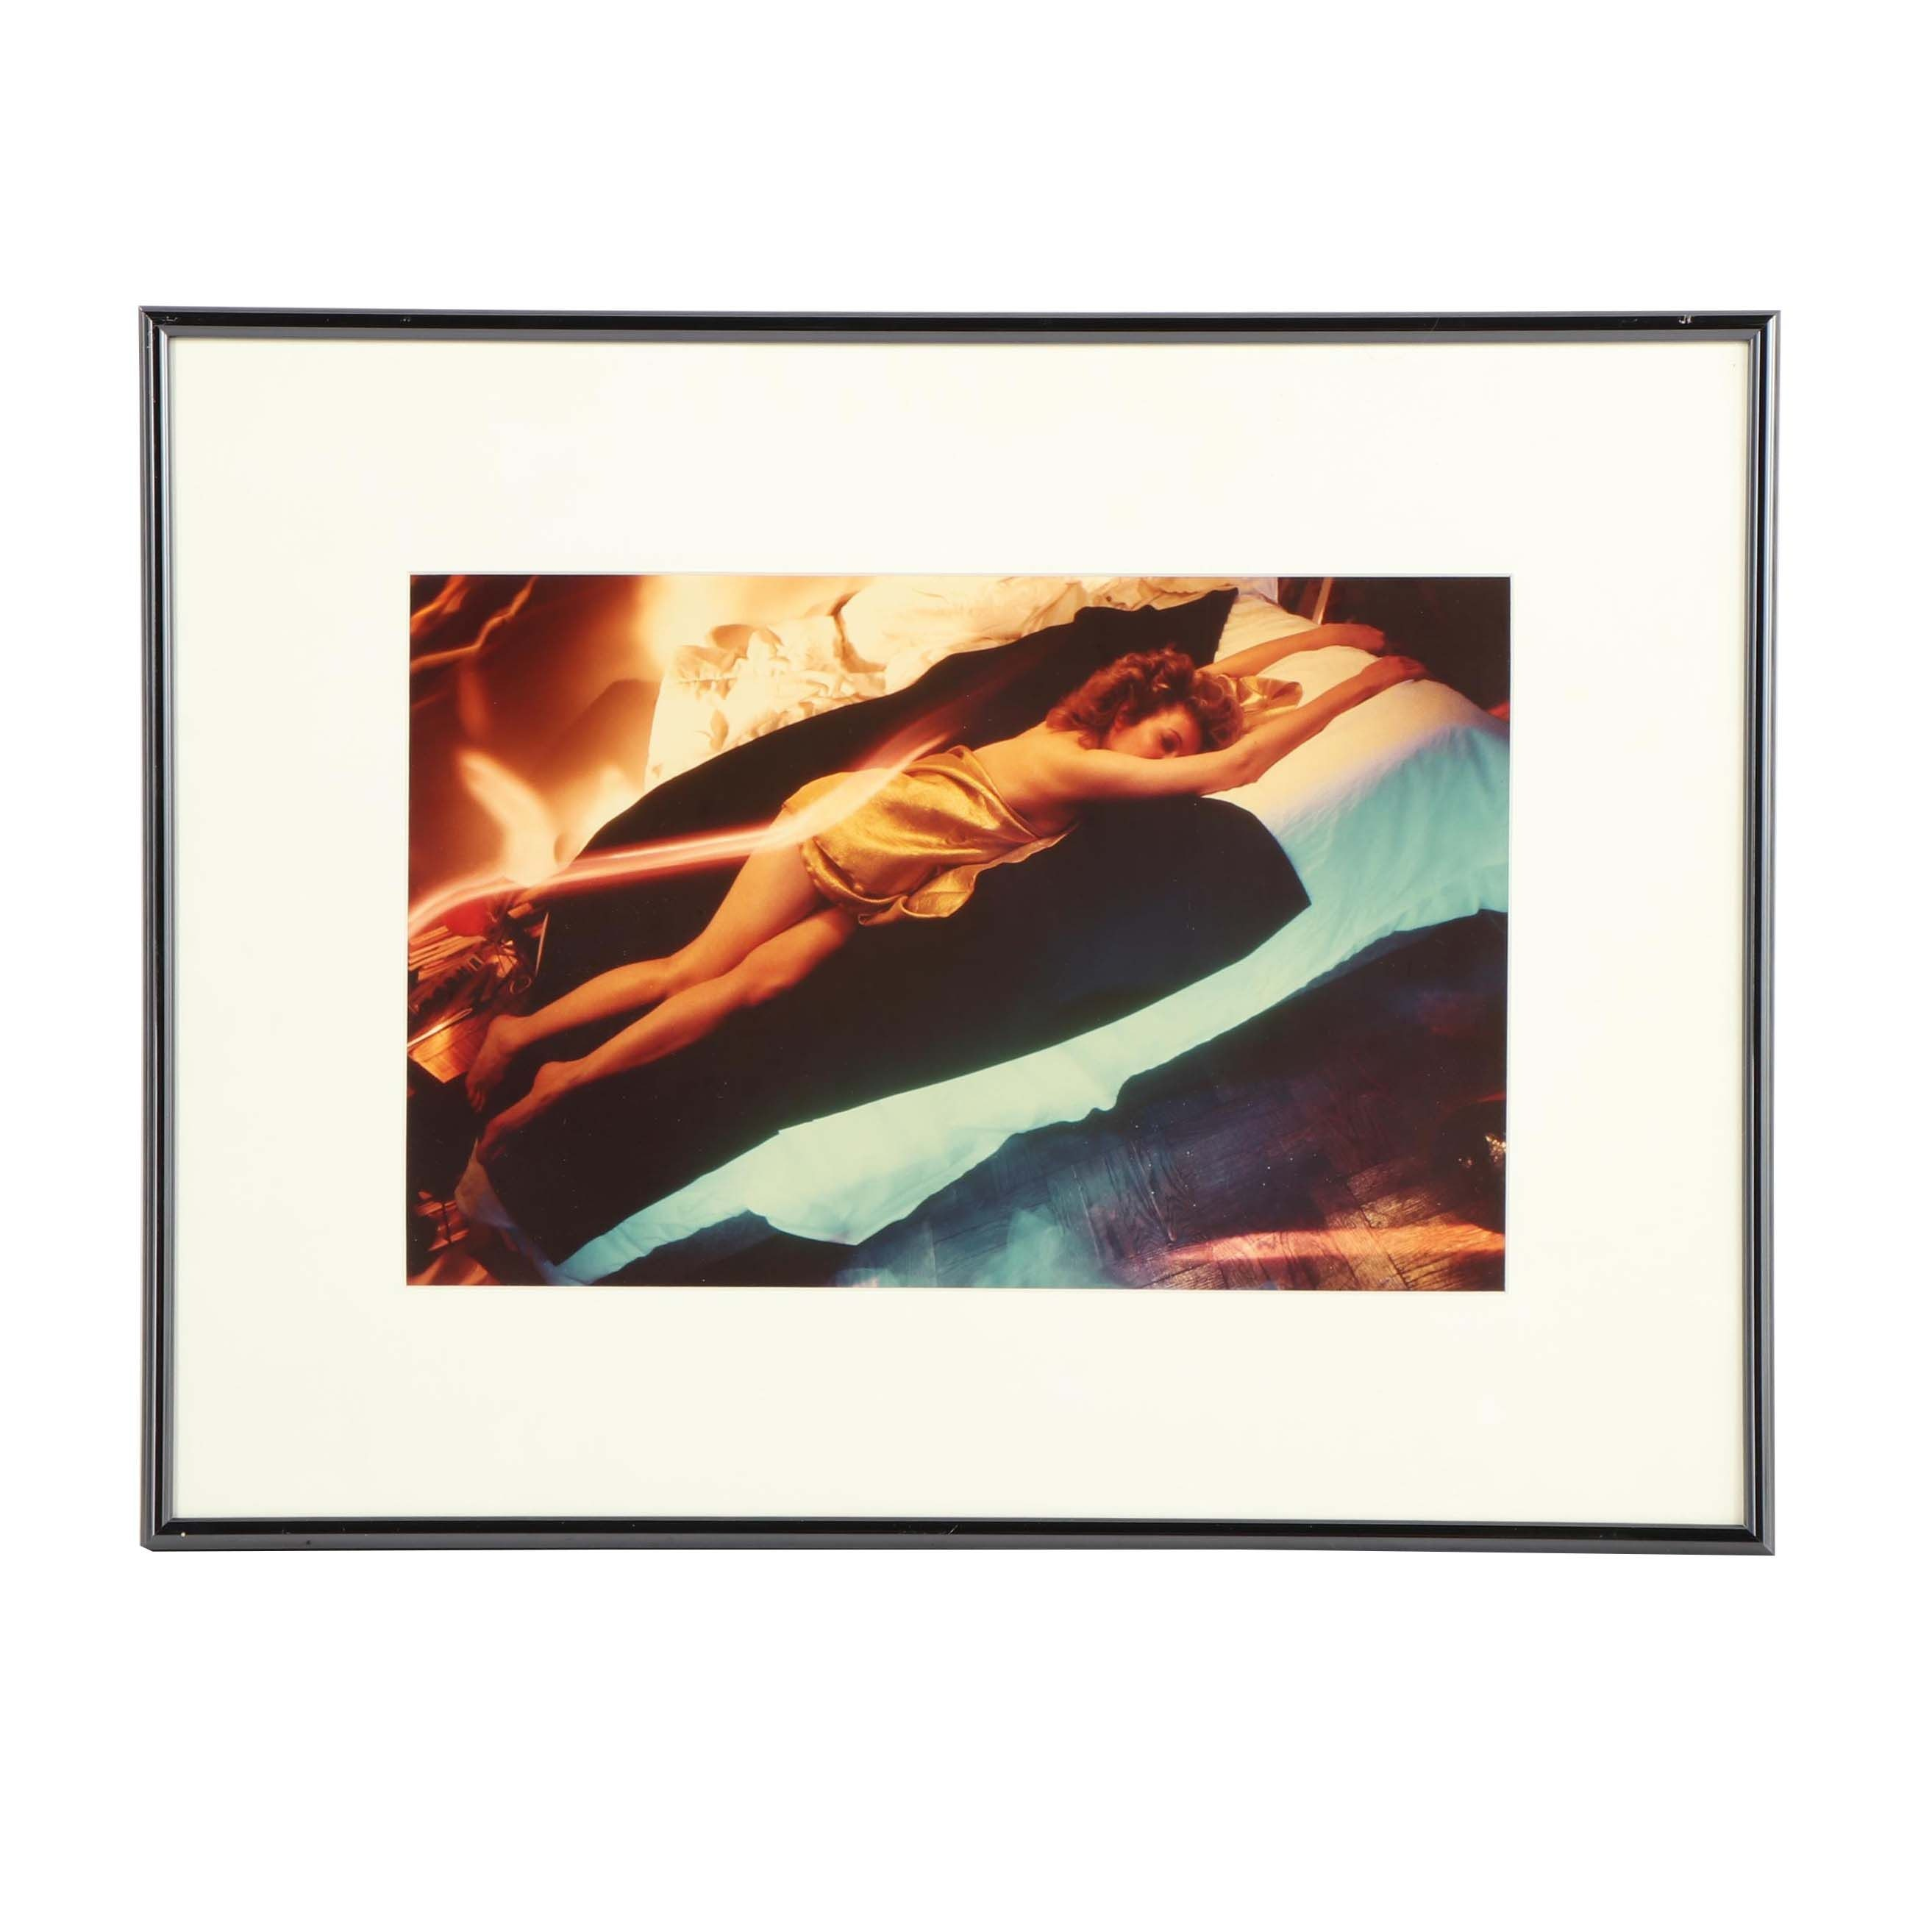 Reclining Woman Photograph Attributed to Dean Chamberlain (b. 1954)